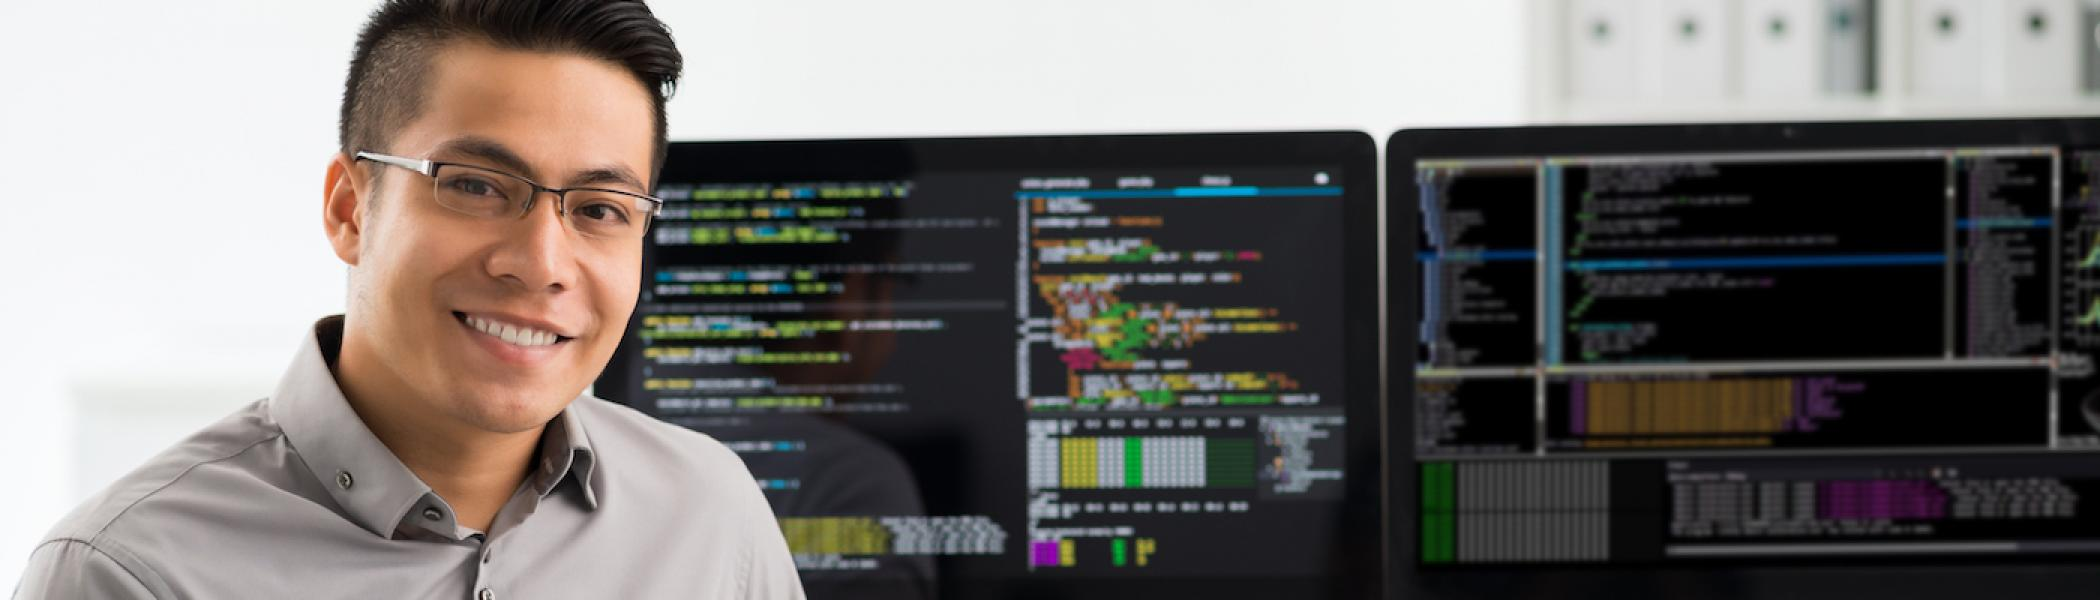 A man siting in front of a computer with code on it, smiling to the camera